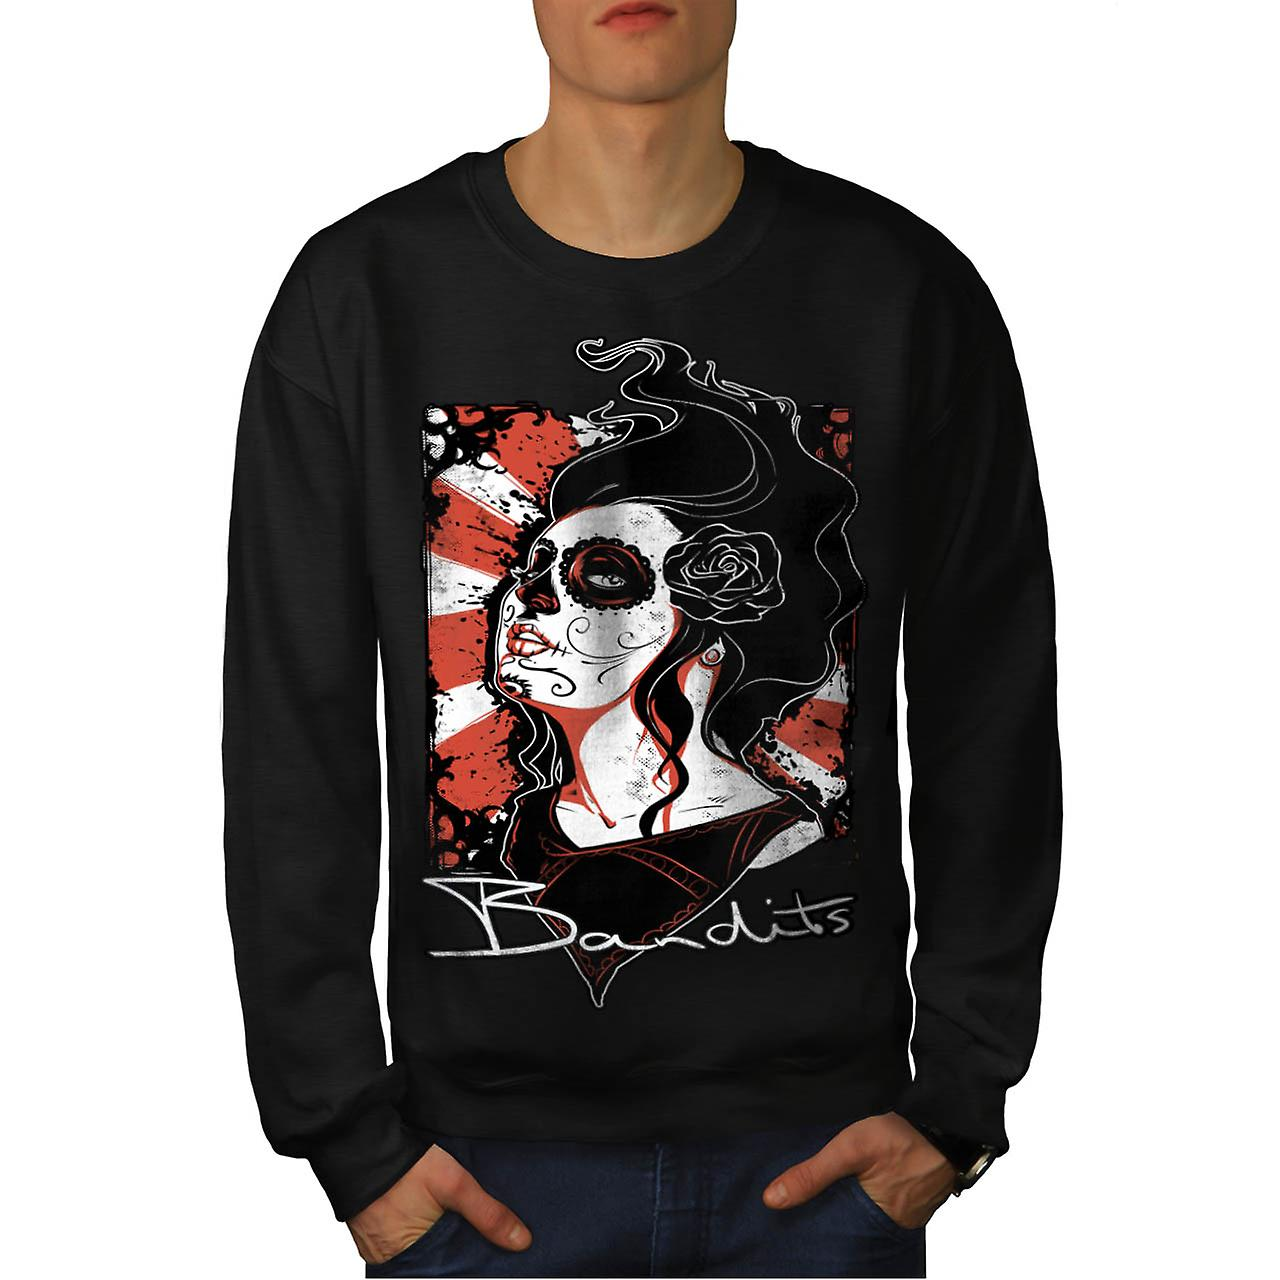 Bandits Cabaret Love Goth Queen Men Black Sweatshirt | Wellcoda